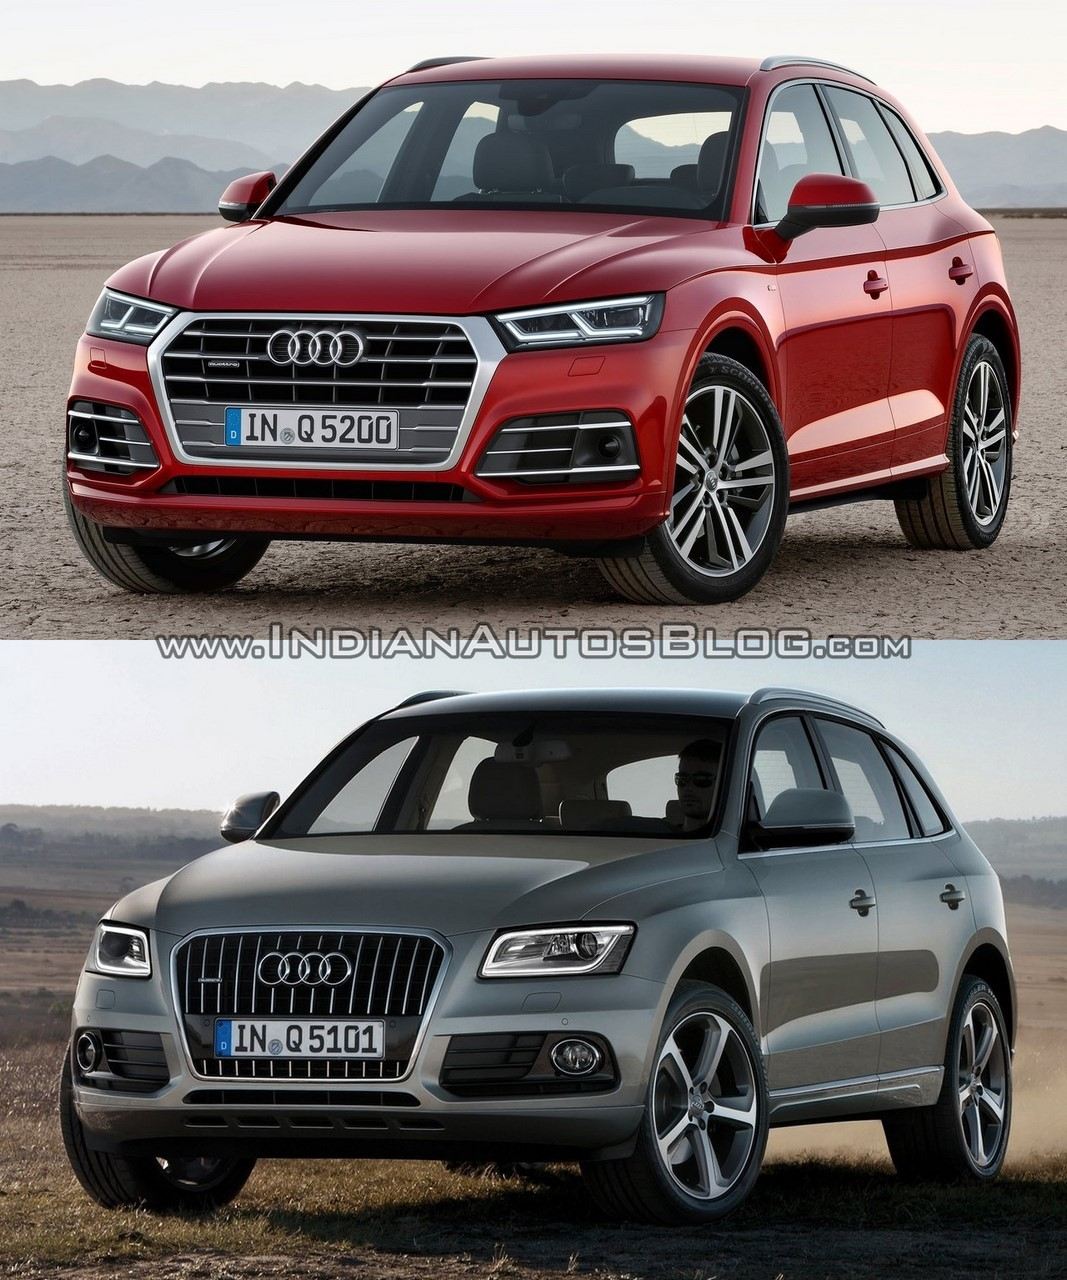 2017 Audi Q5 vs. 2013 Audi Q5 front three quarters second image